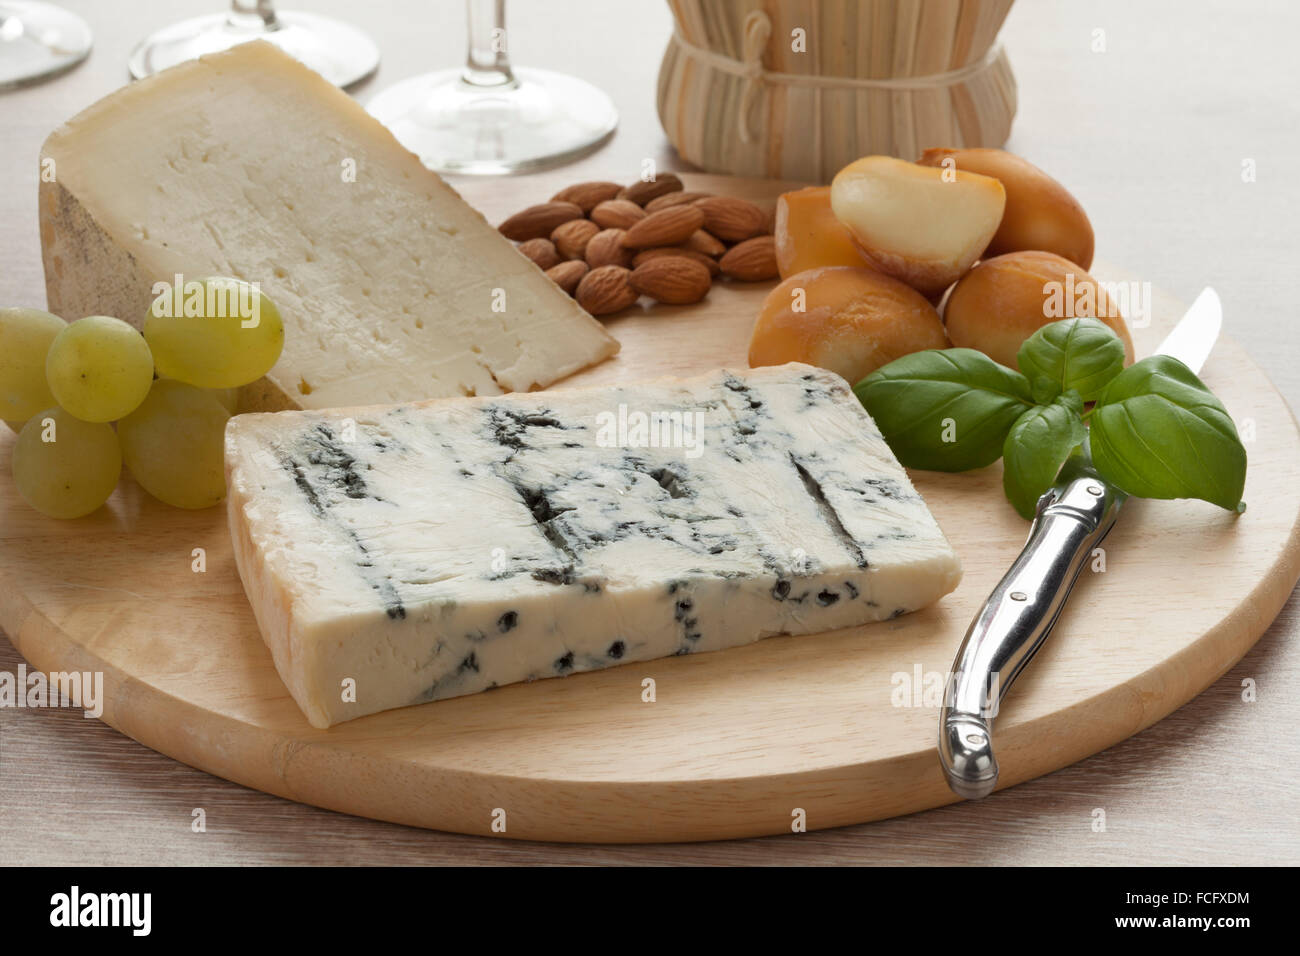 Italian cheese platter with smoked mozzarella, gorgonzola picante and toma piemontese - Stock Image